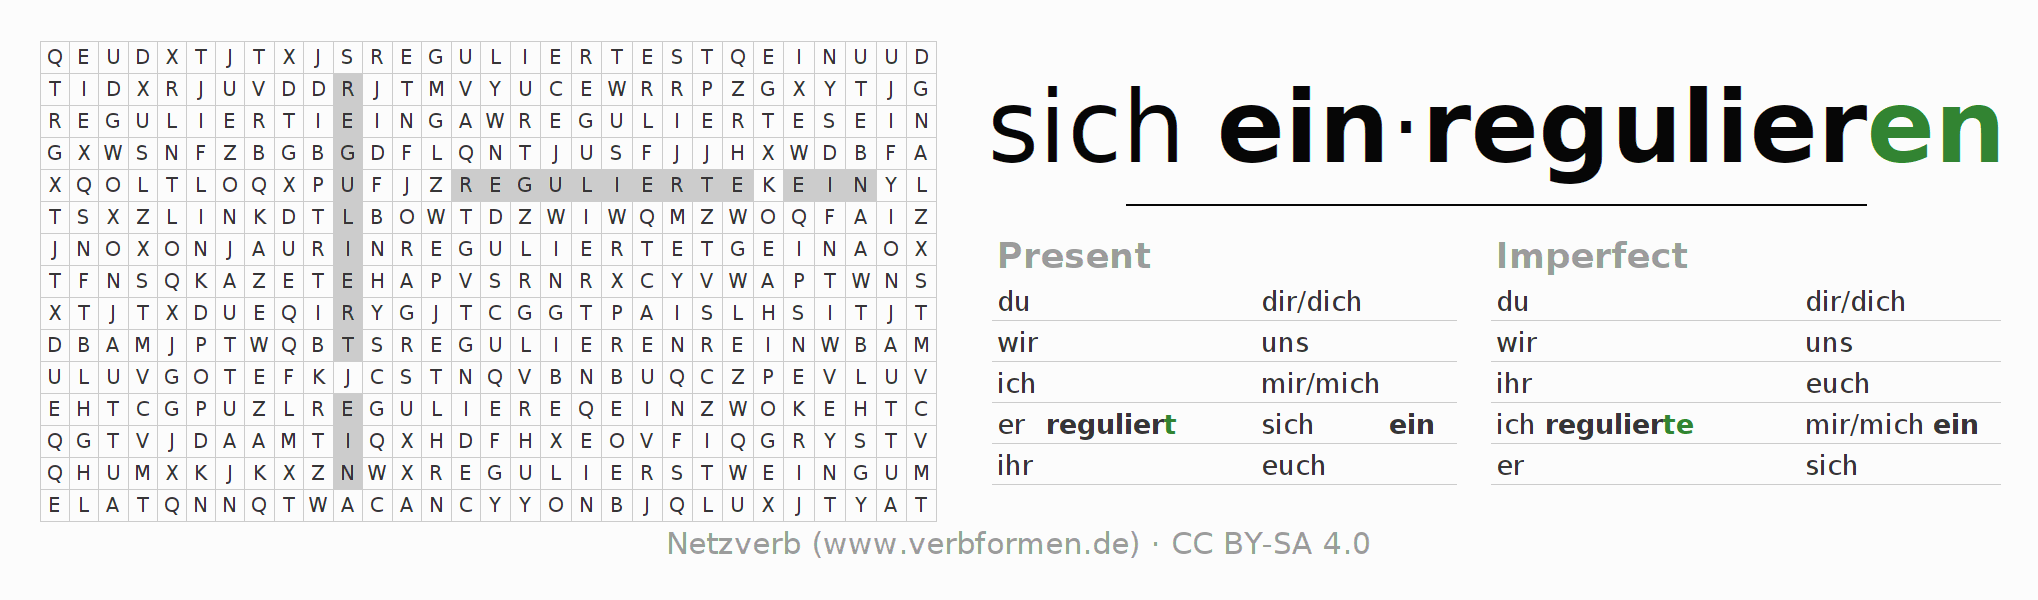 Word search puzzle for the conjugation of the verb sich einregulieren